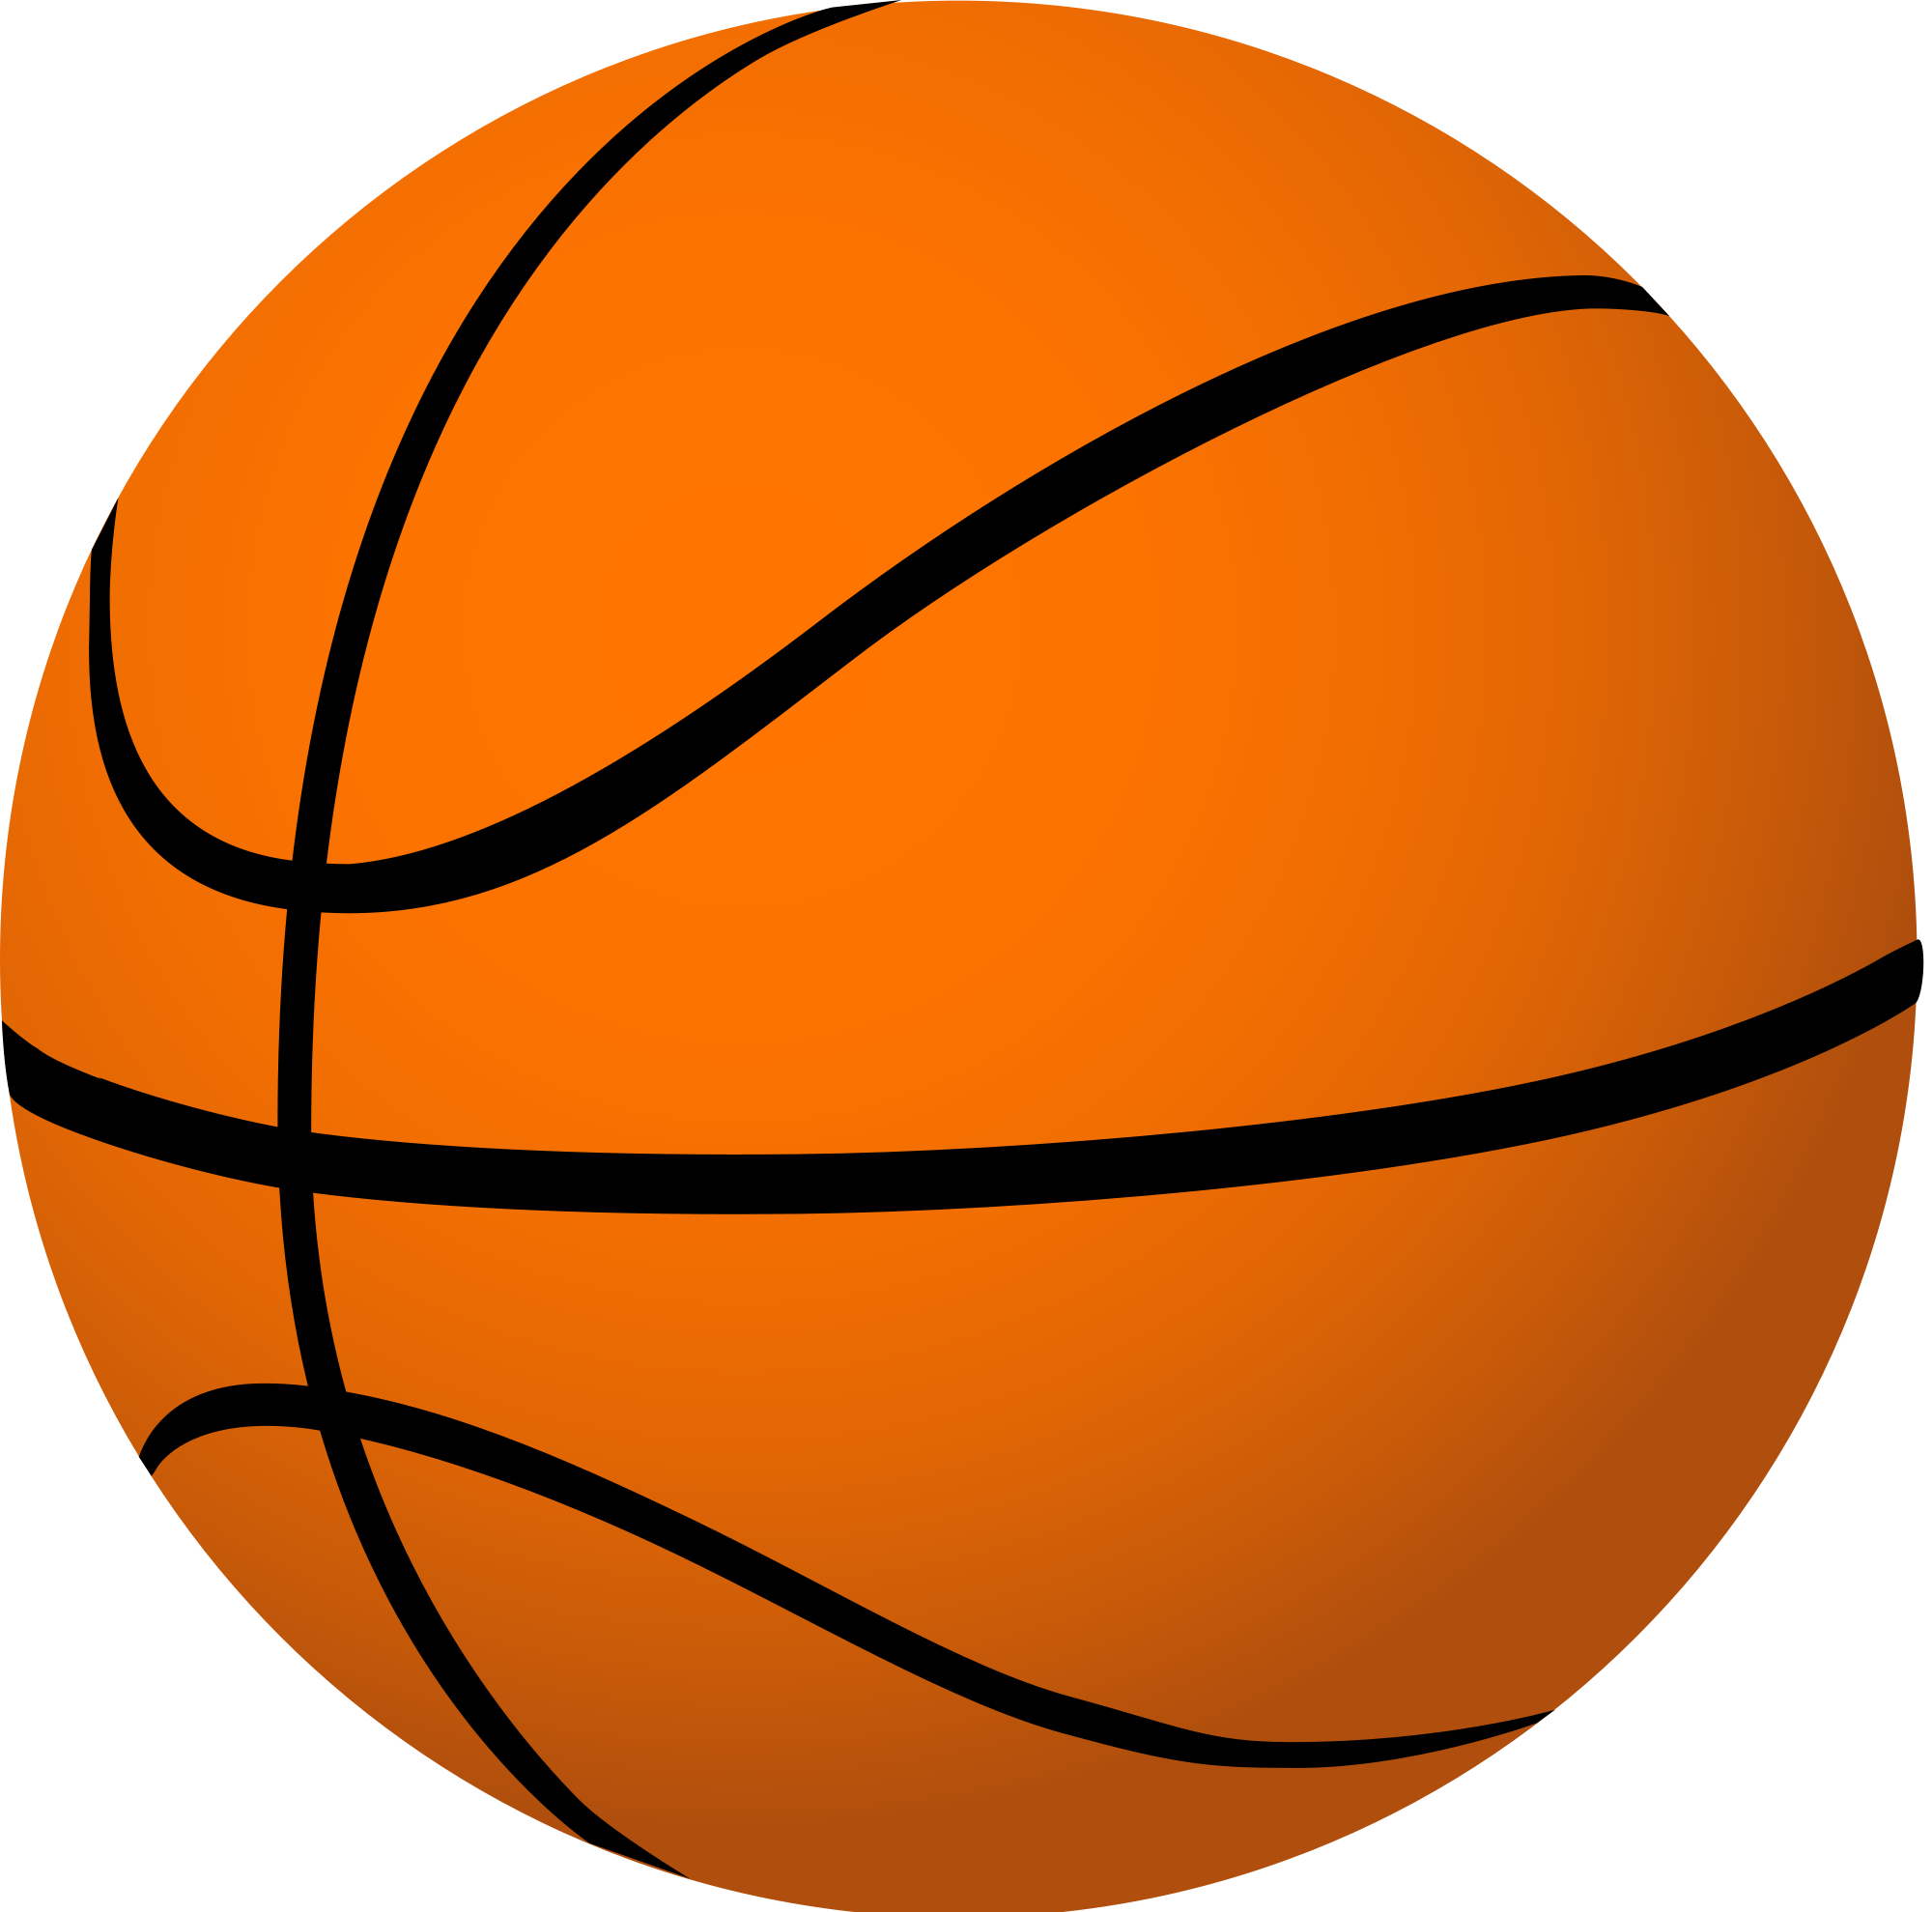 Basketball clipart. File svg wikimedia commons